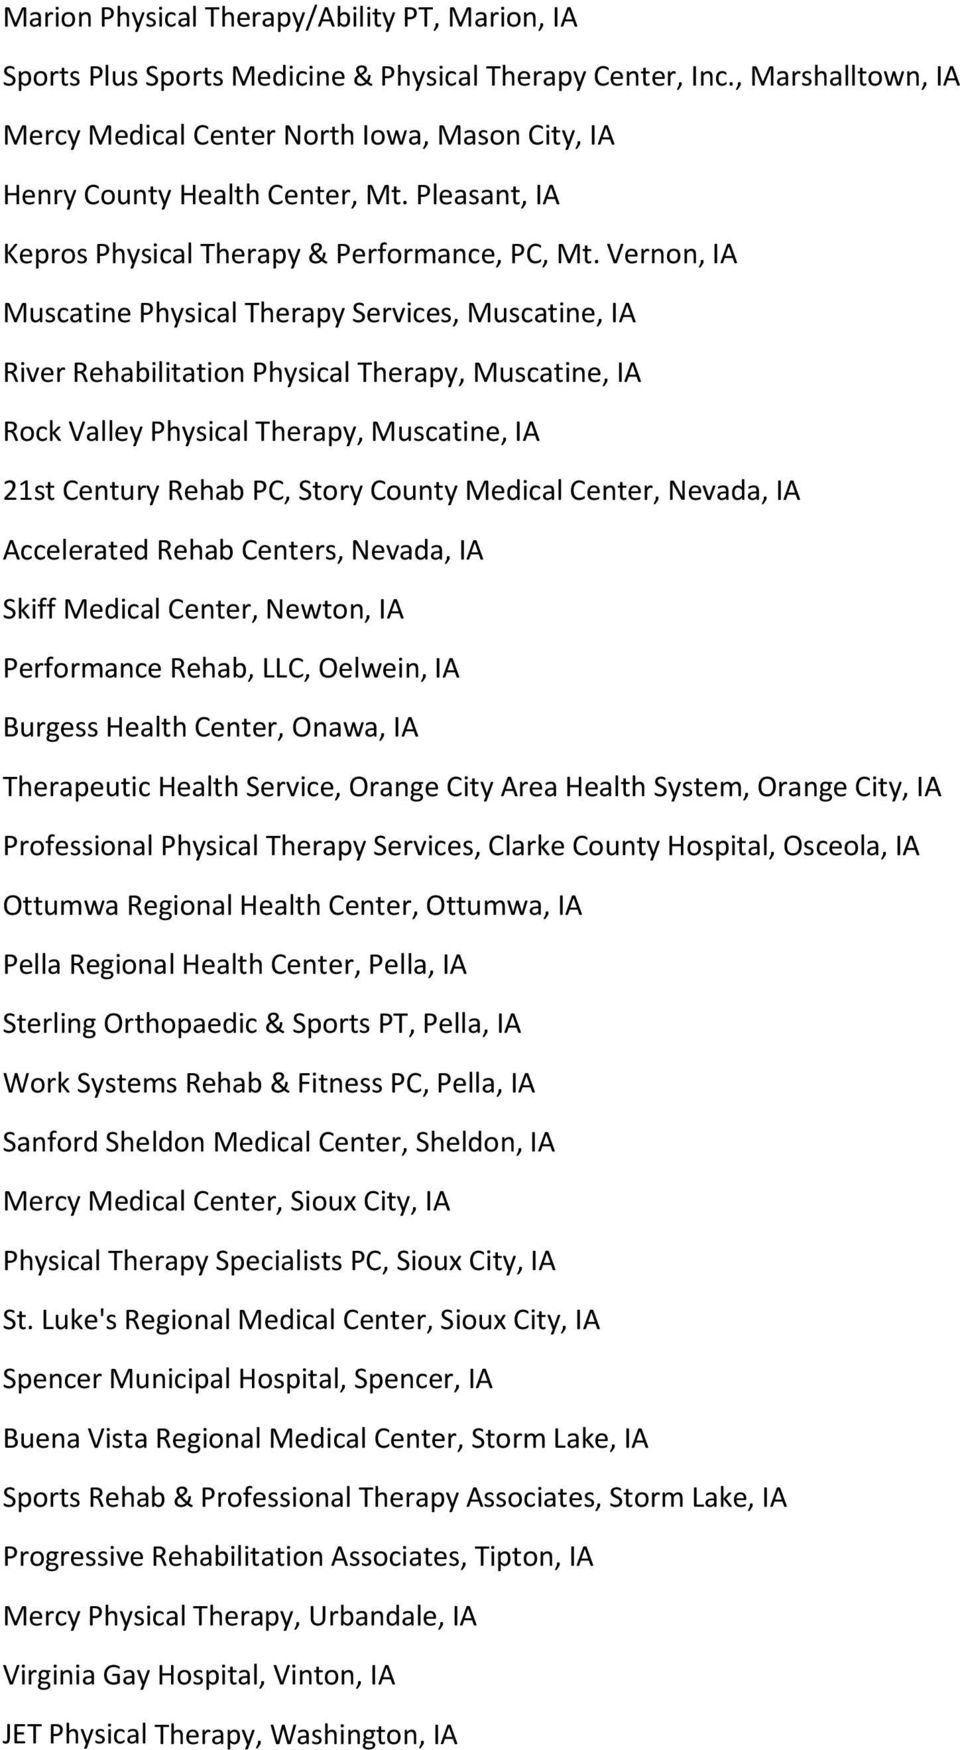 Vernon, IA Muscatine Physical Therapy Services, Muscatine, IA River Rehabilitation Physical Therapy, Muscatine, IA Rock Valley Physical Therapy, Muscatine, IA 21st Century Rehab PC, Story County